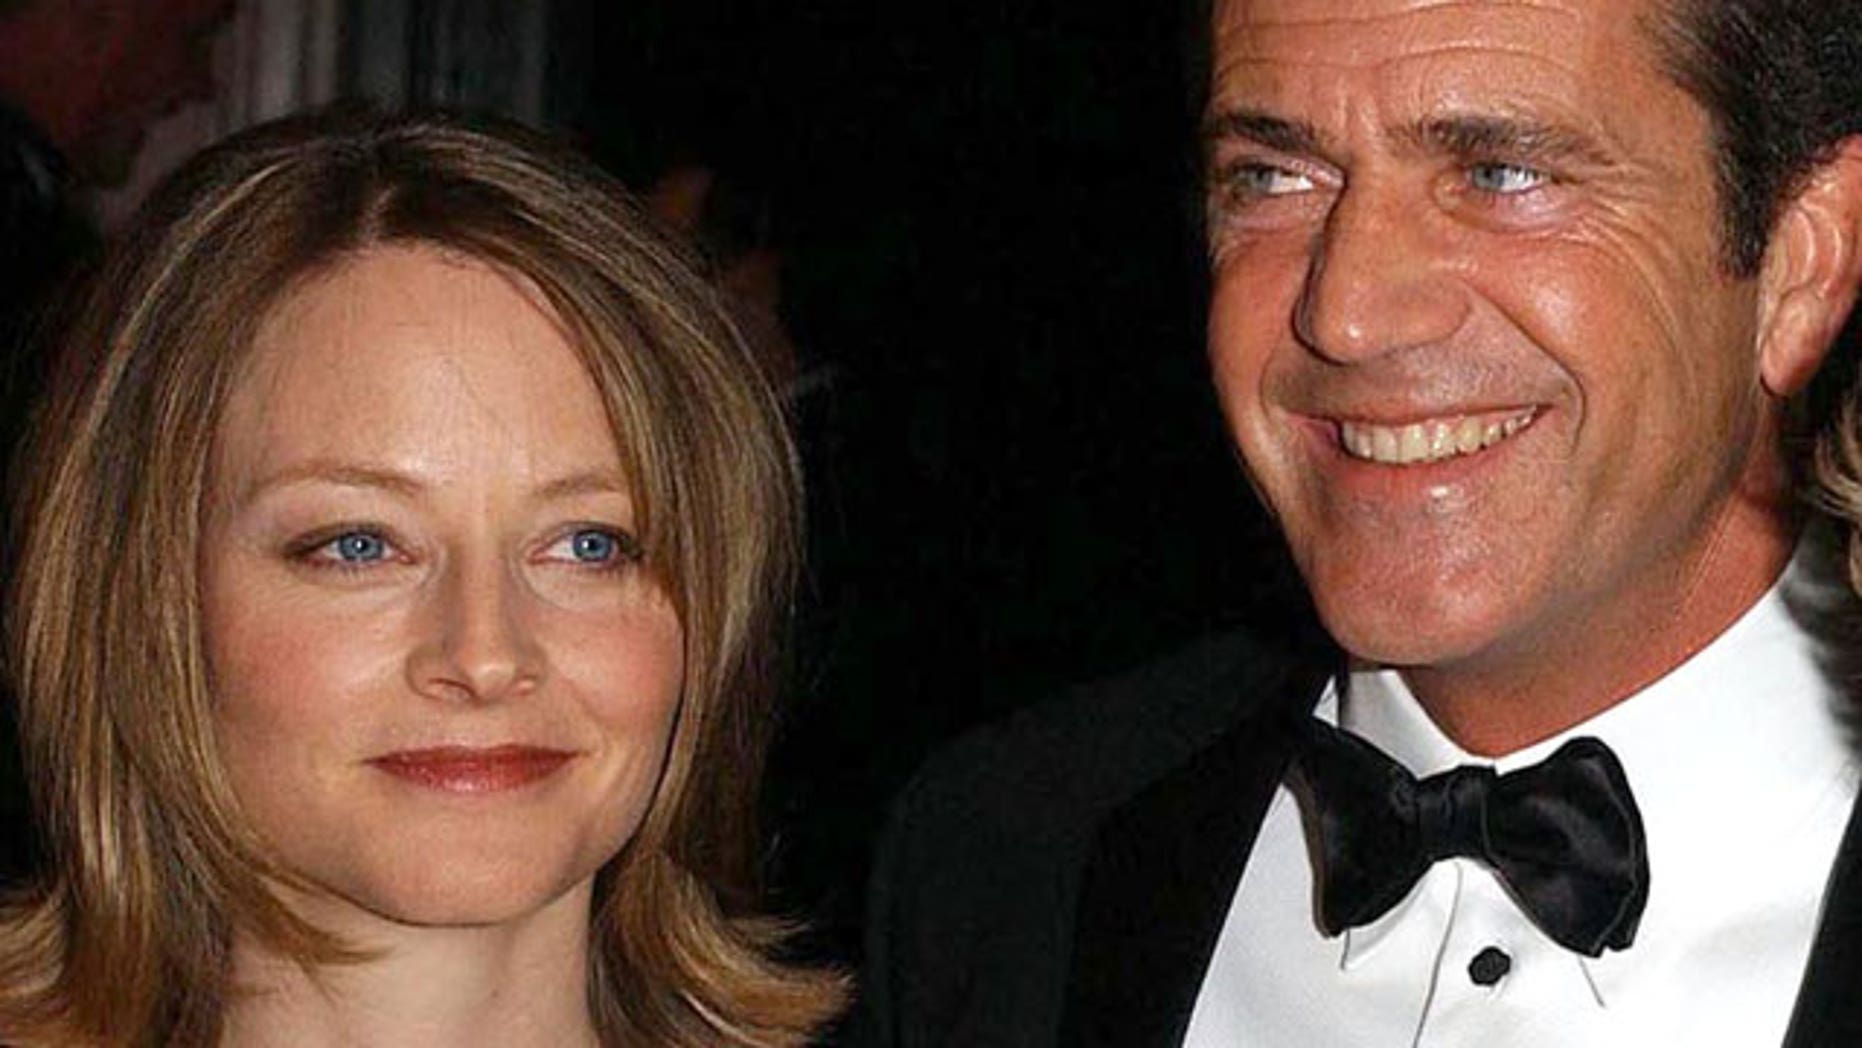 July 2002 File: Jodie Foster and Mel Gibson attend the 17th Annual American Museum of the Moving Image Salute Awards in New York. (Reuters)